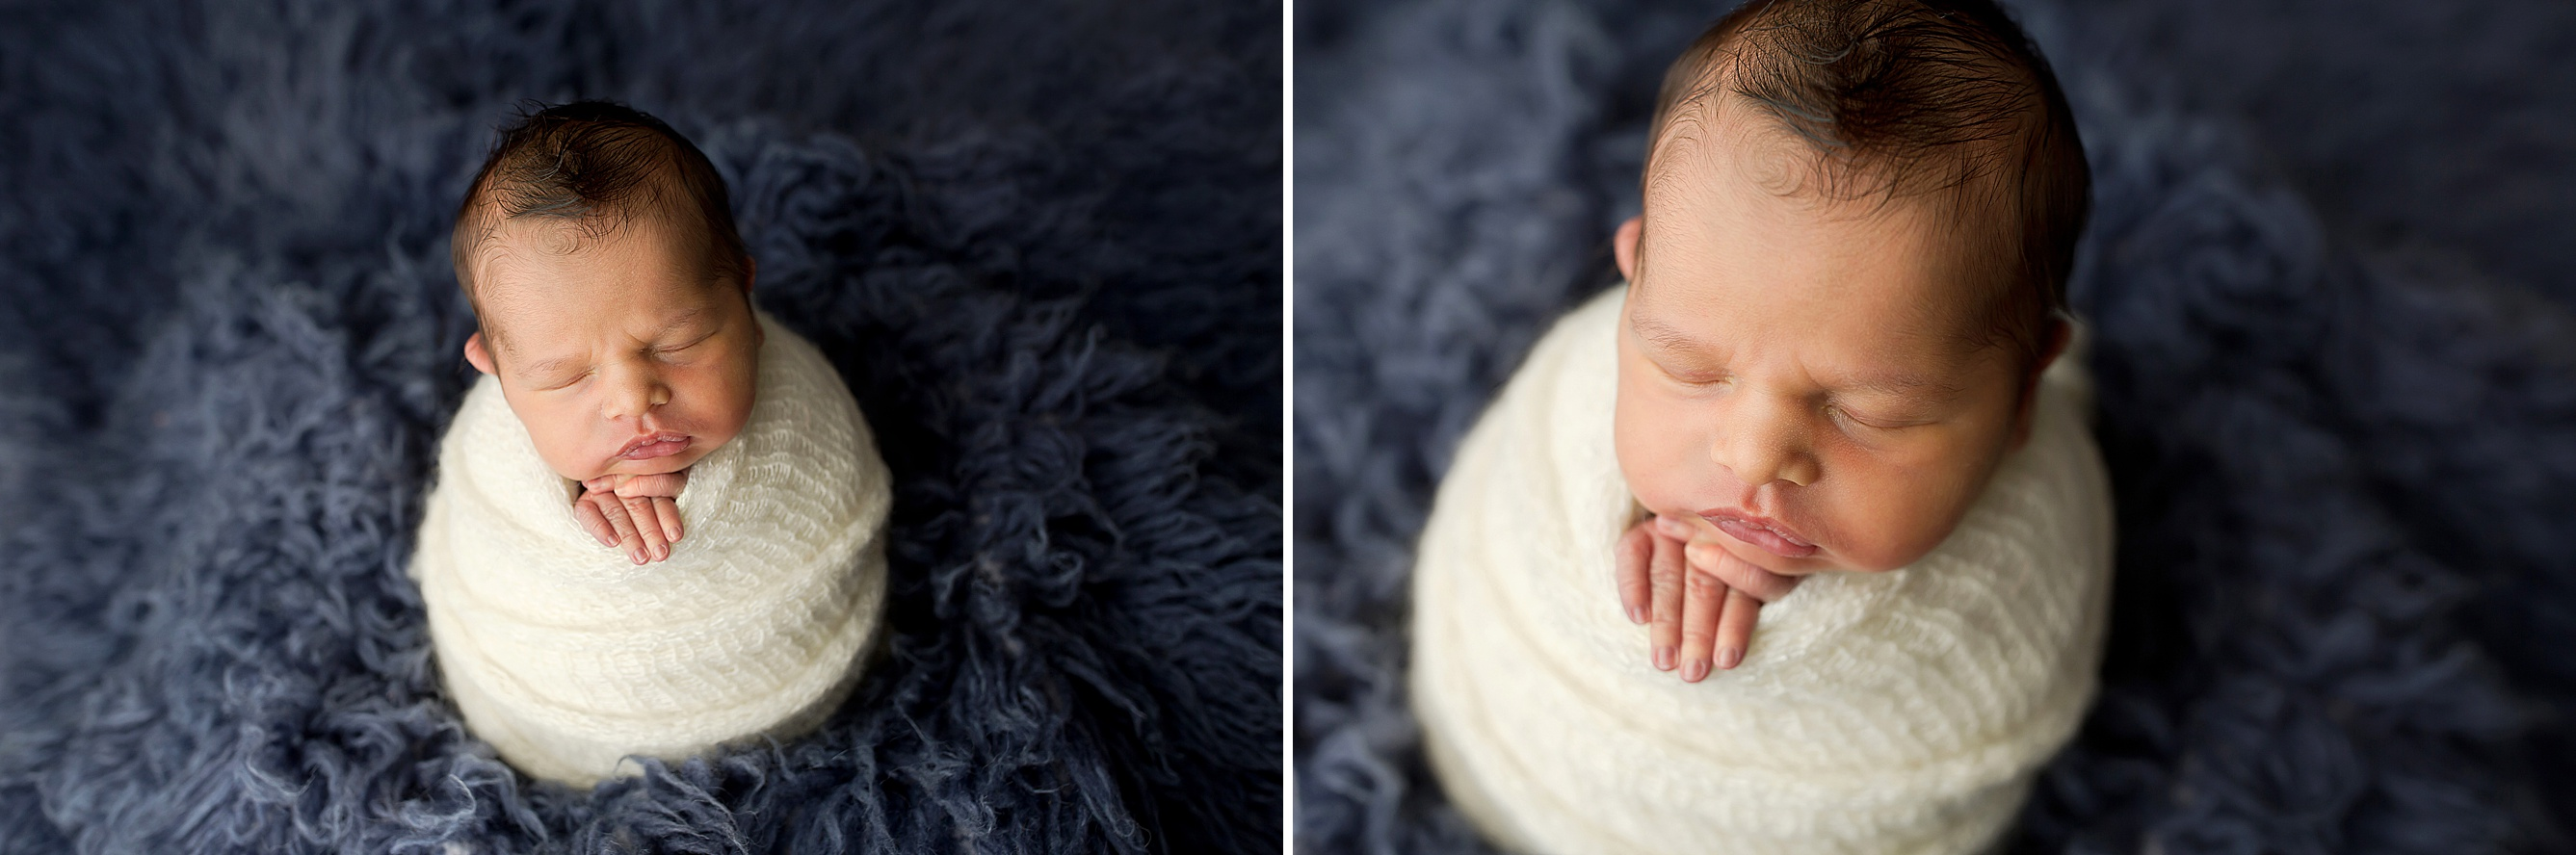 Metamora IL Newborn Photographer | Chandi Kesler_0125.jpg